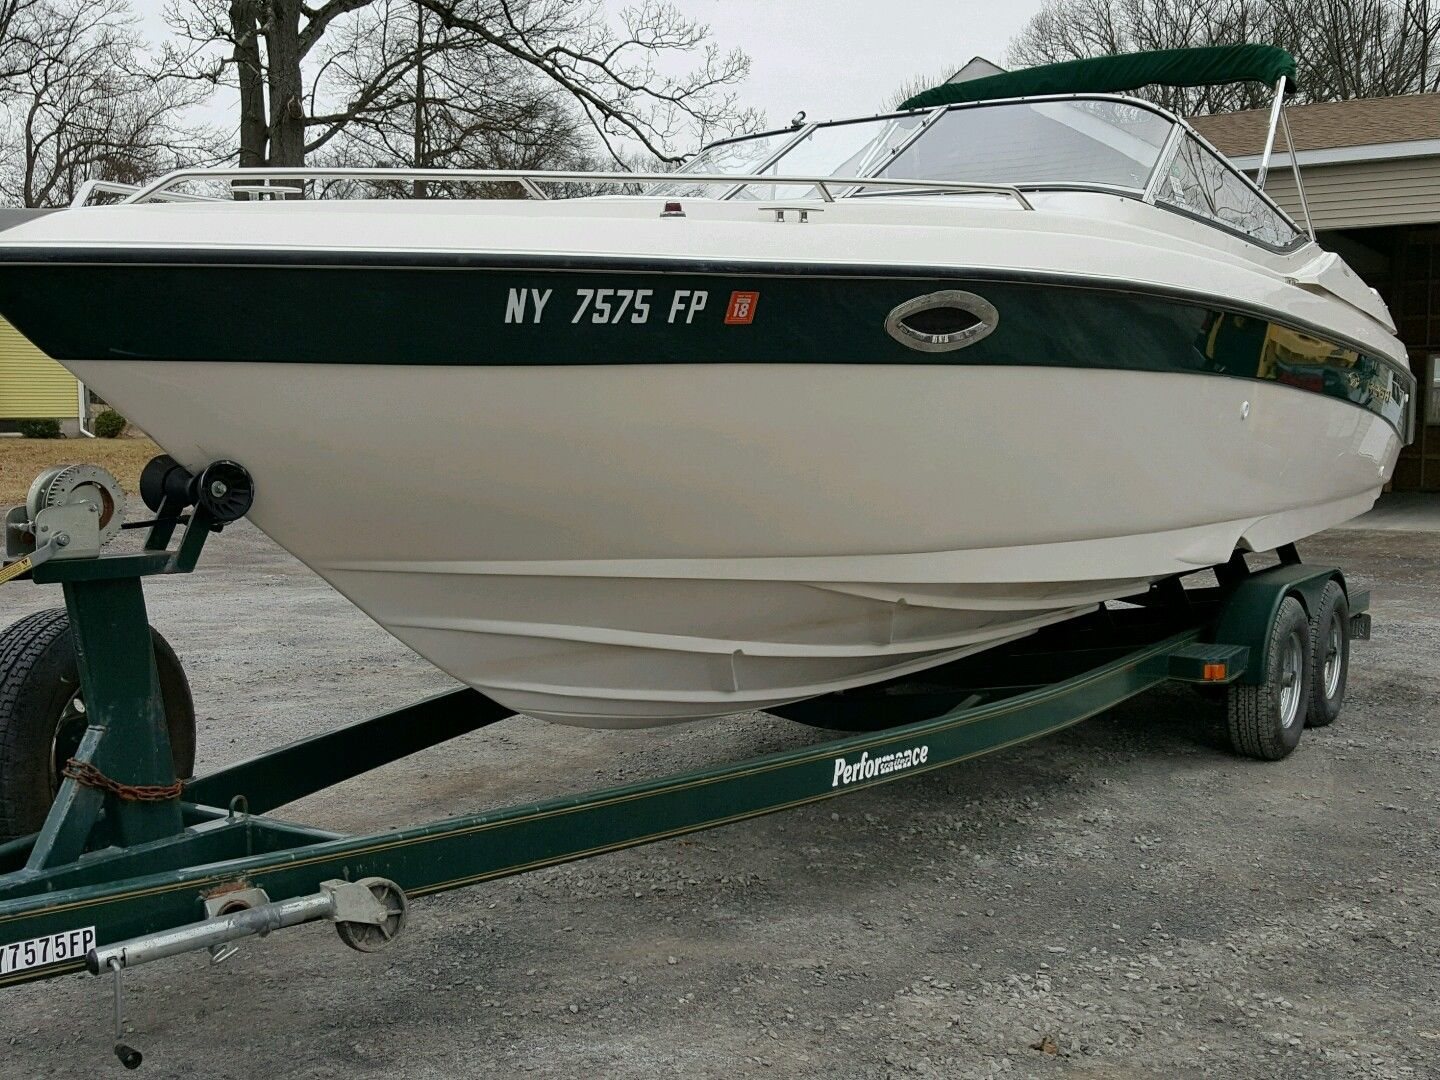 Lsc Regal 2850 Lsc 1999 For Sale For $20,000 - Boats-from-usa.com